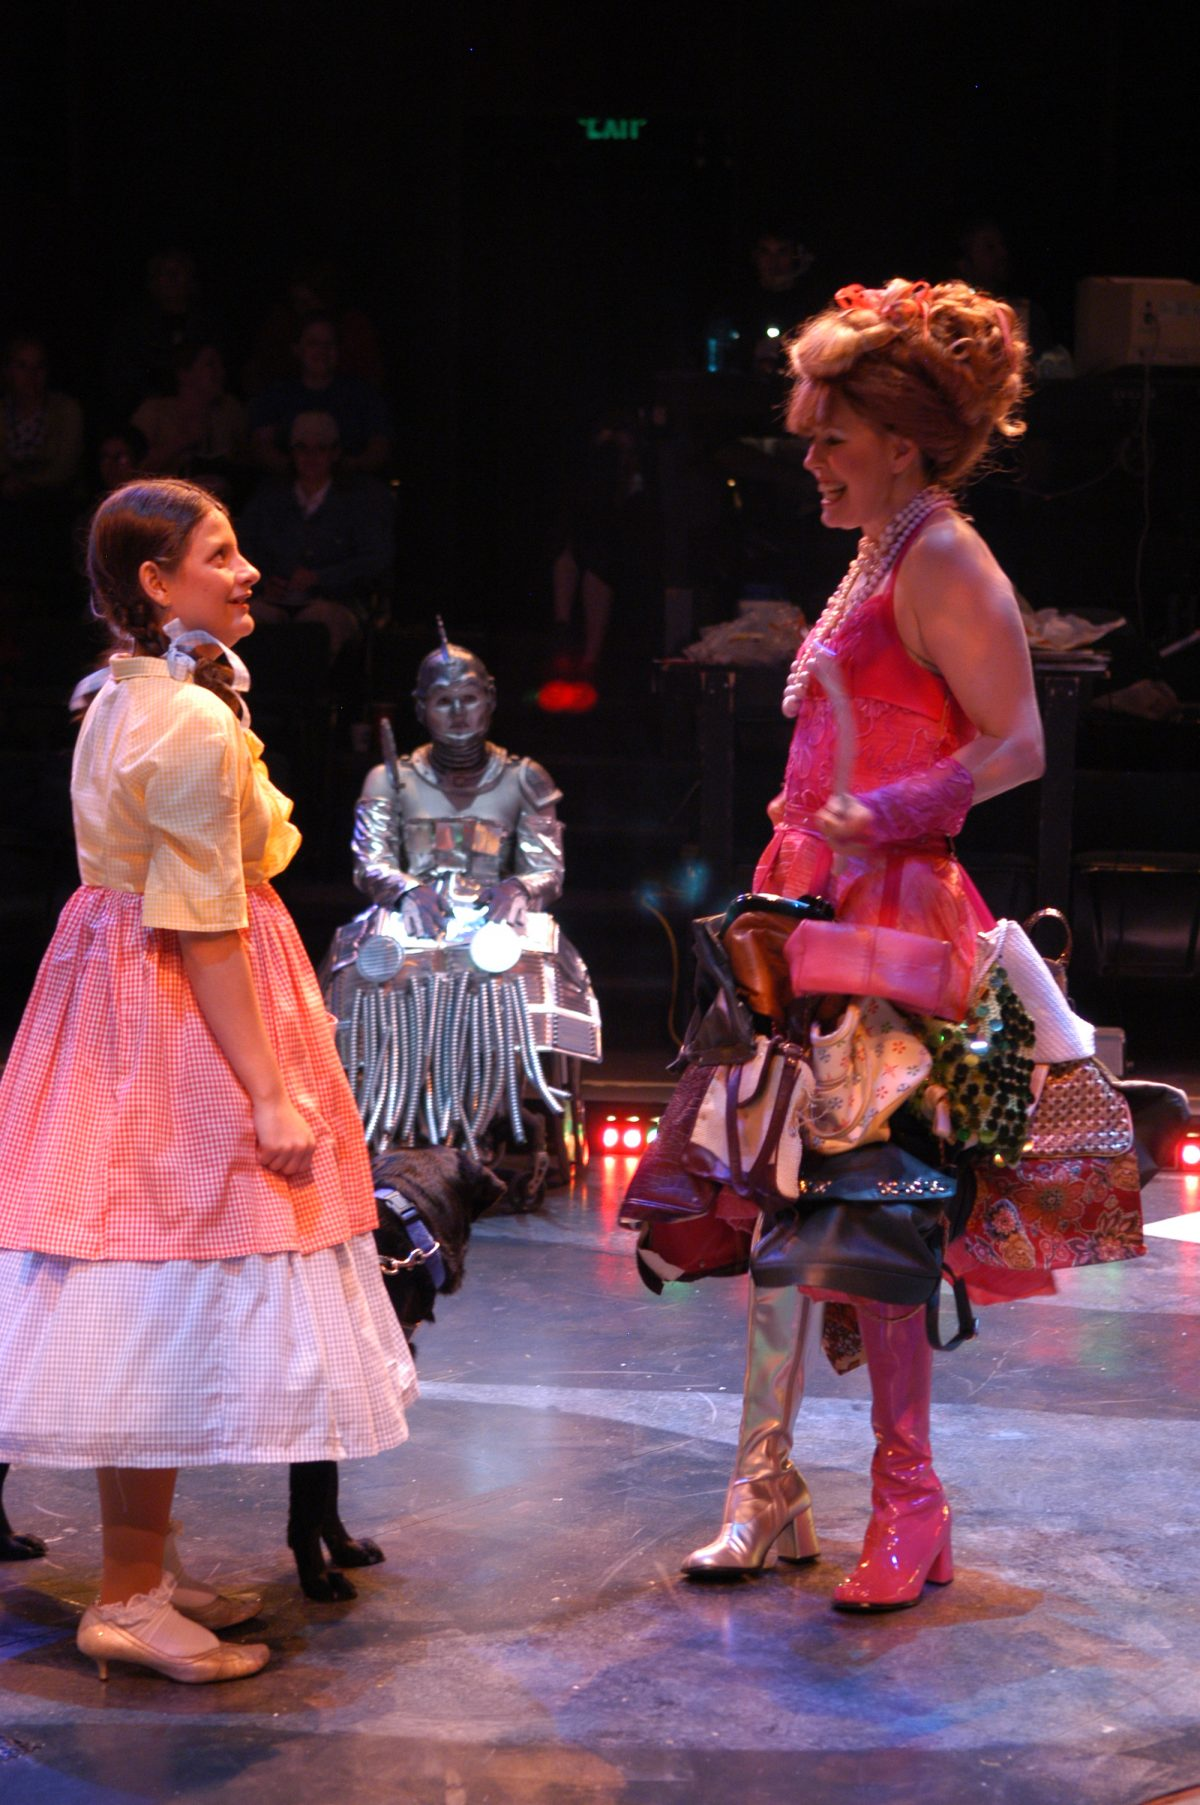 Girl with pigtails facing a woman in pink dress holding a wand. Woman in wheelchair and metallic costume in background.